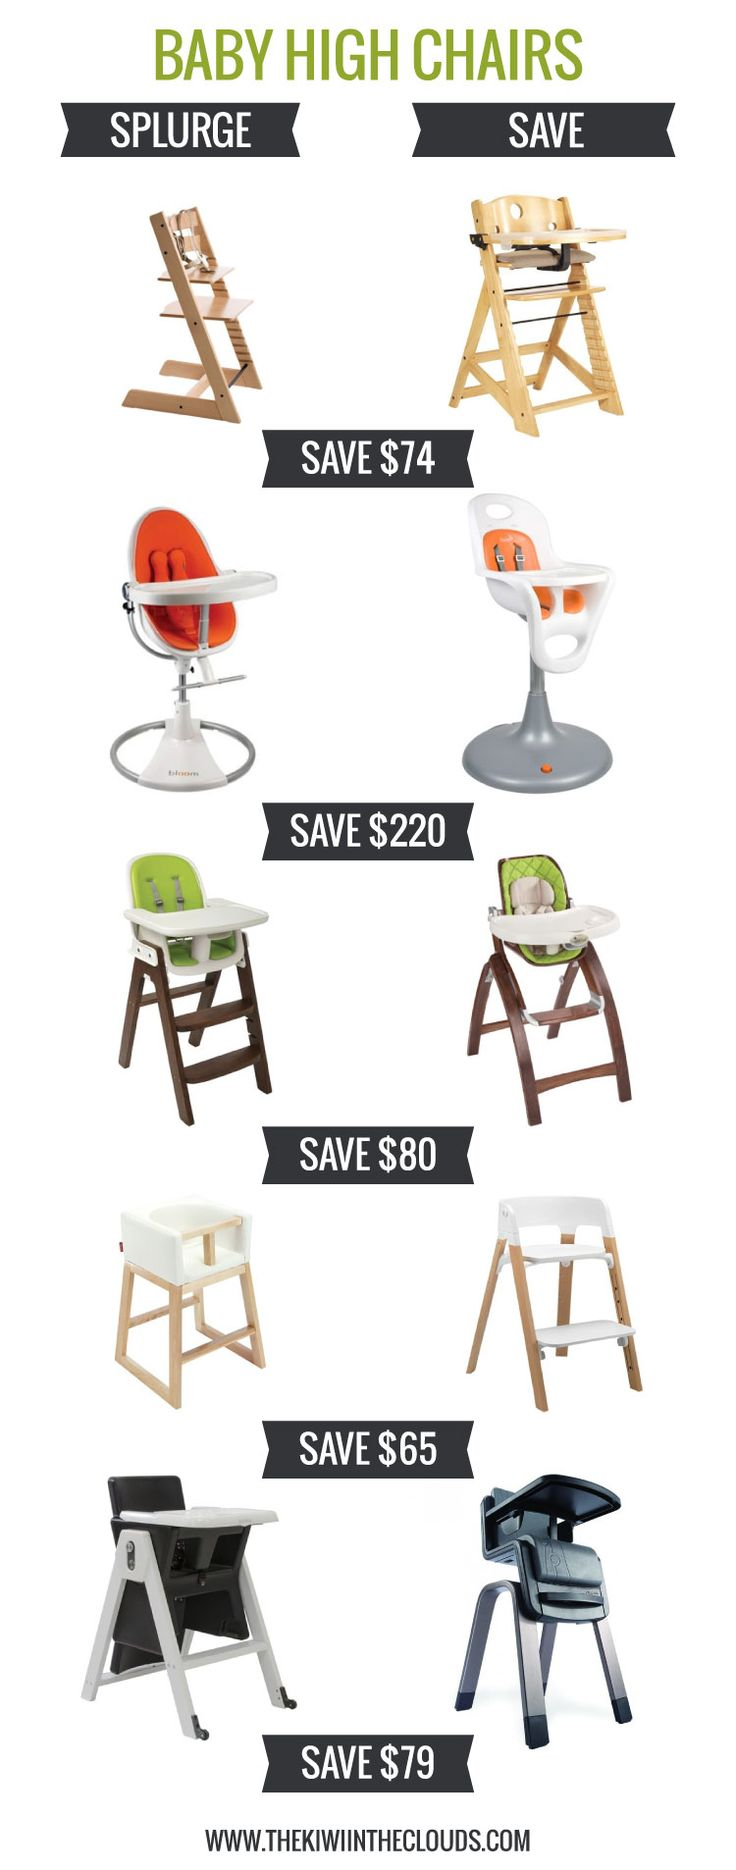 Baby gear can be expensive, but I've narrowed the search for the best baby high chairs available. Splurge for a long lasting chair or save money with a more affordable option.